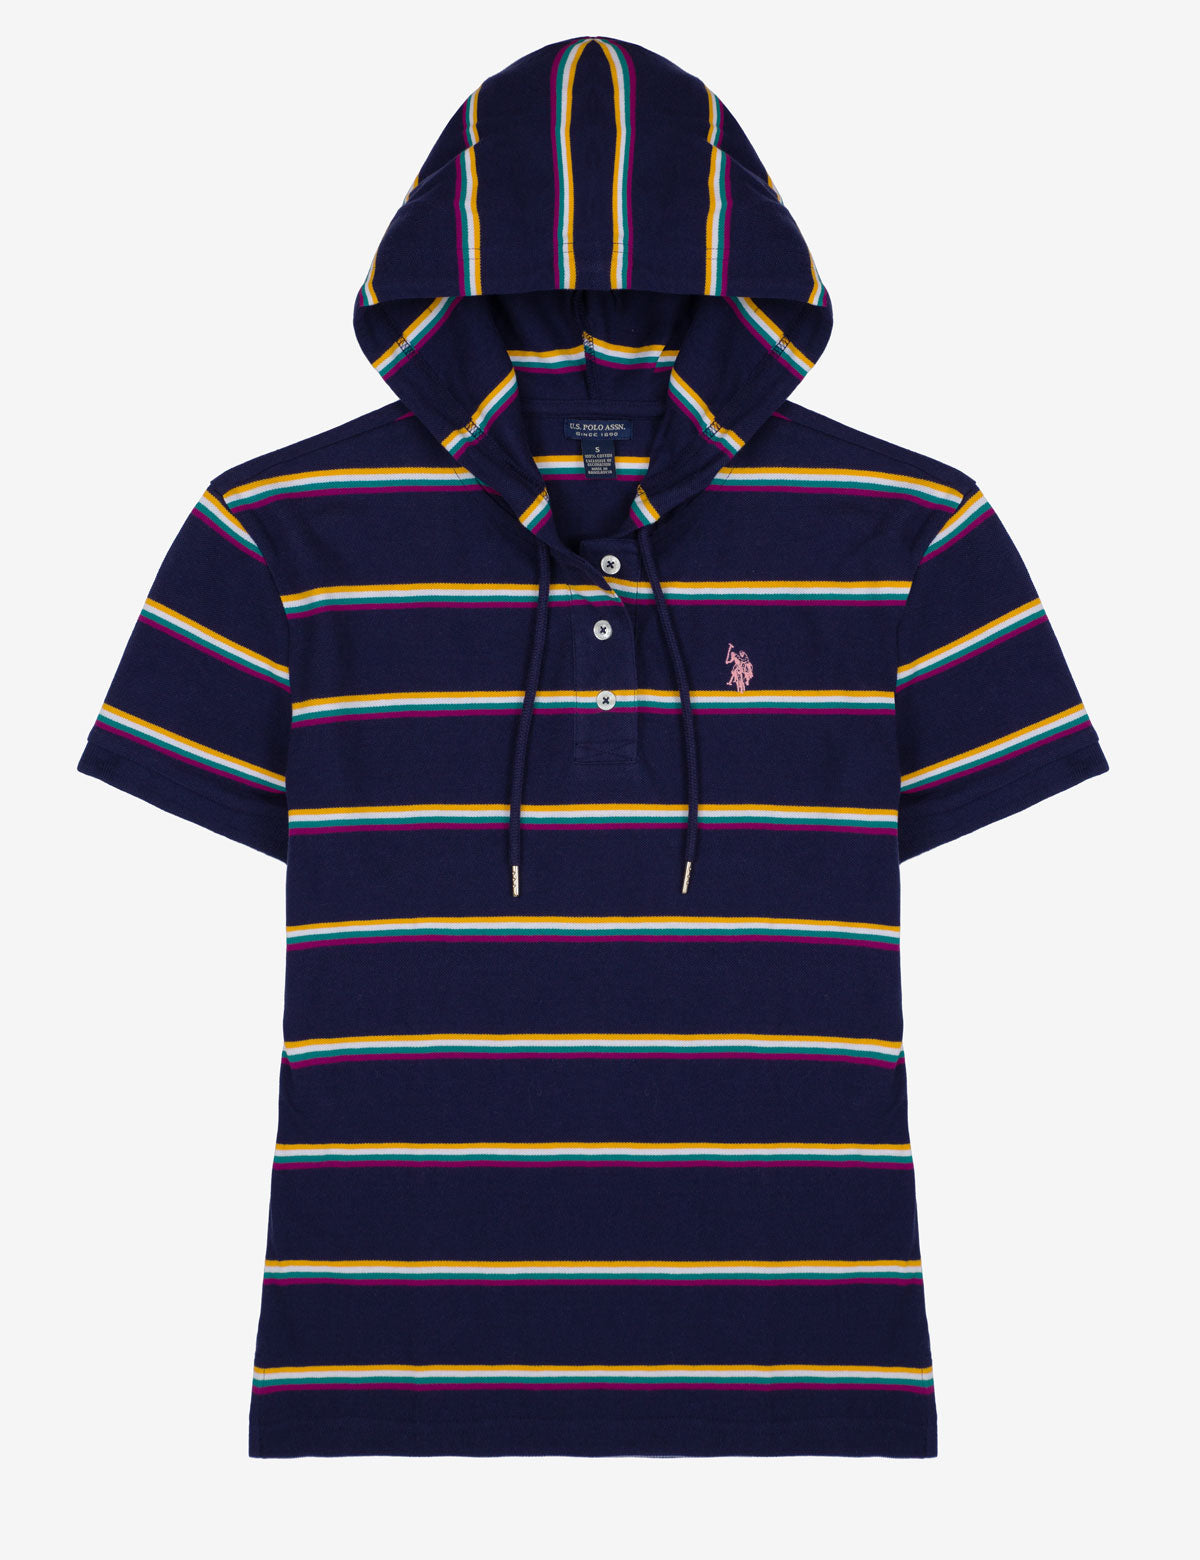 STRIPED SHORT SLEEVE HOODIE - U.S. Polo Assn.